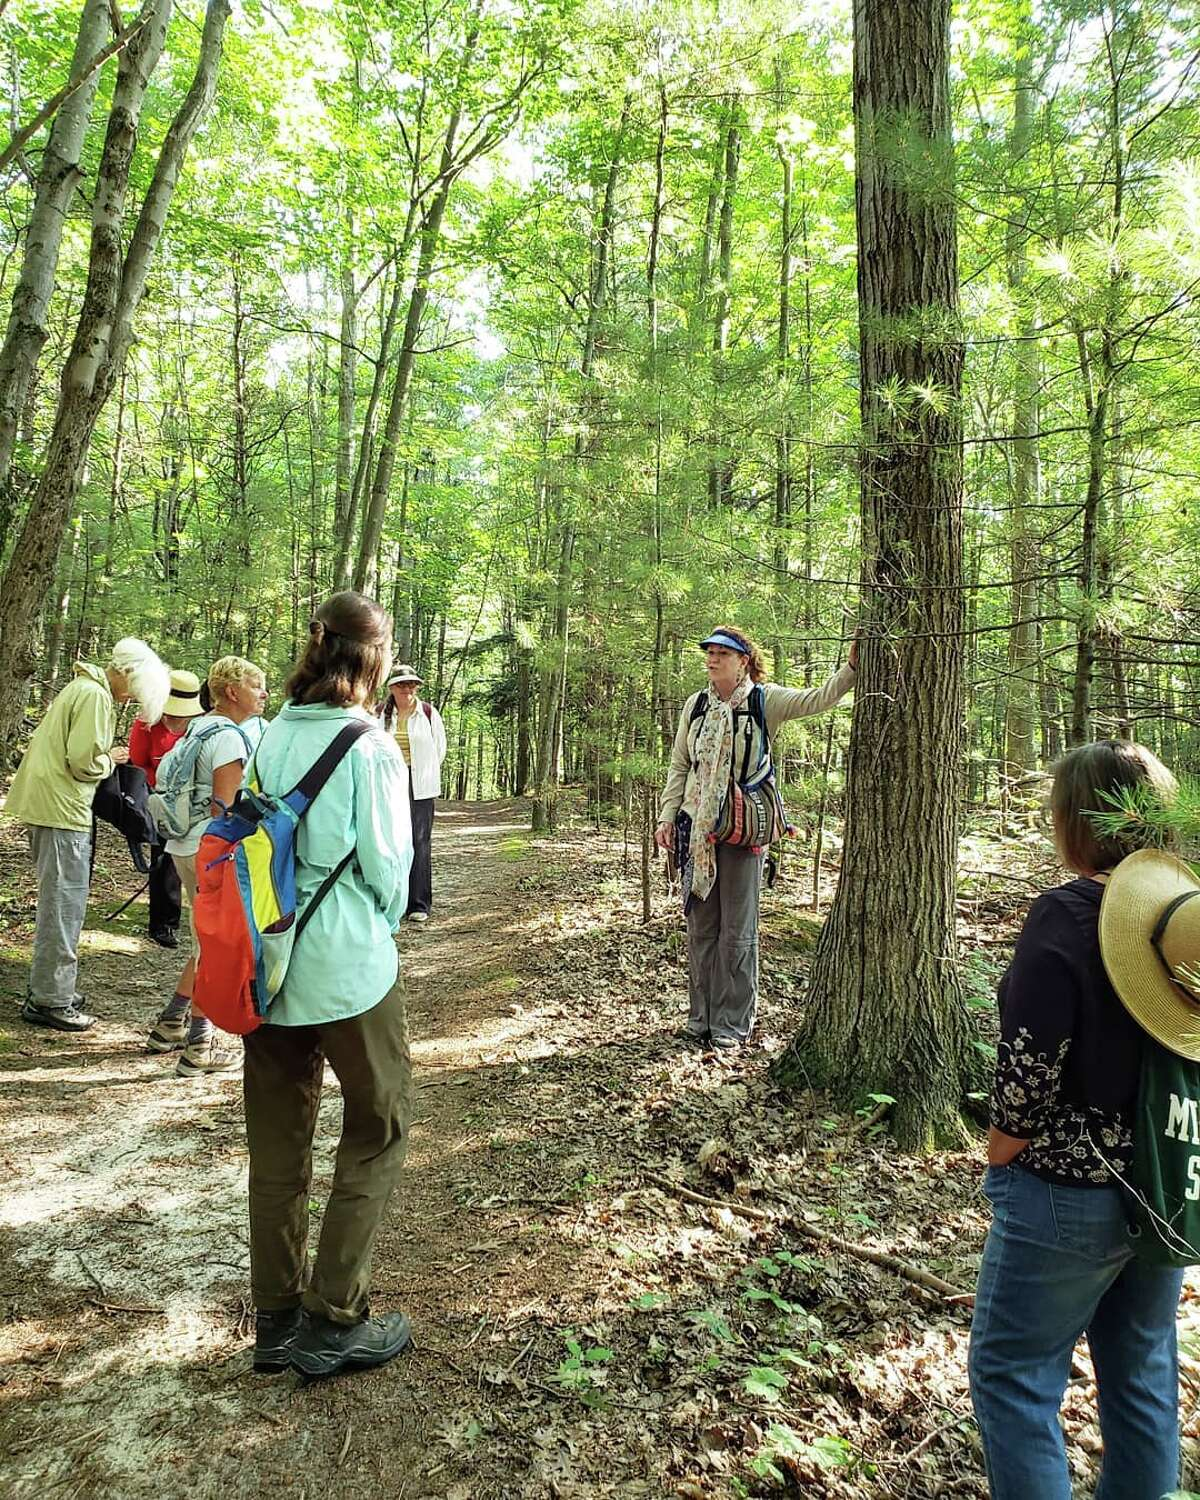 Gloria Garrett, of Mindfulness in Nature, is shown in the center of this photo leading a forest bathing workshop at Old Indian Trail off of M-22 in Benzie County.